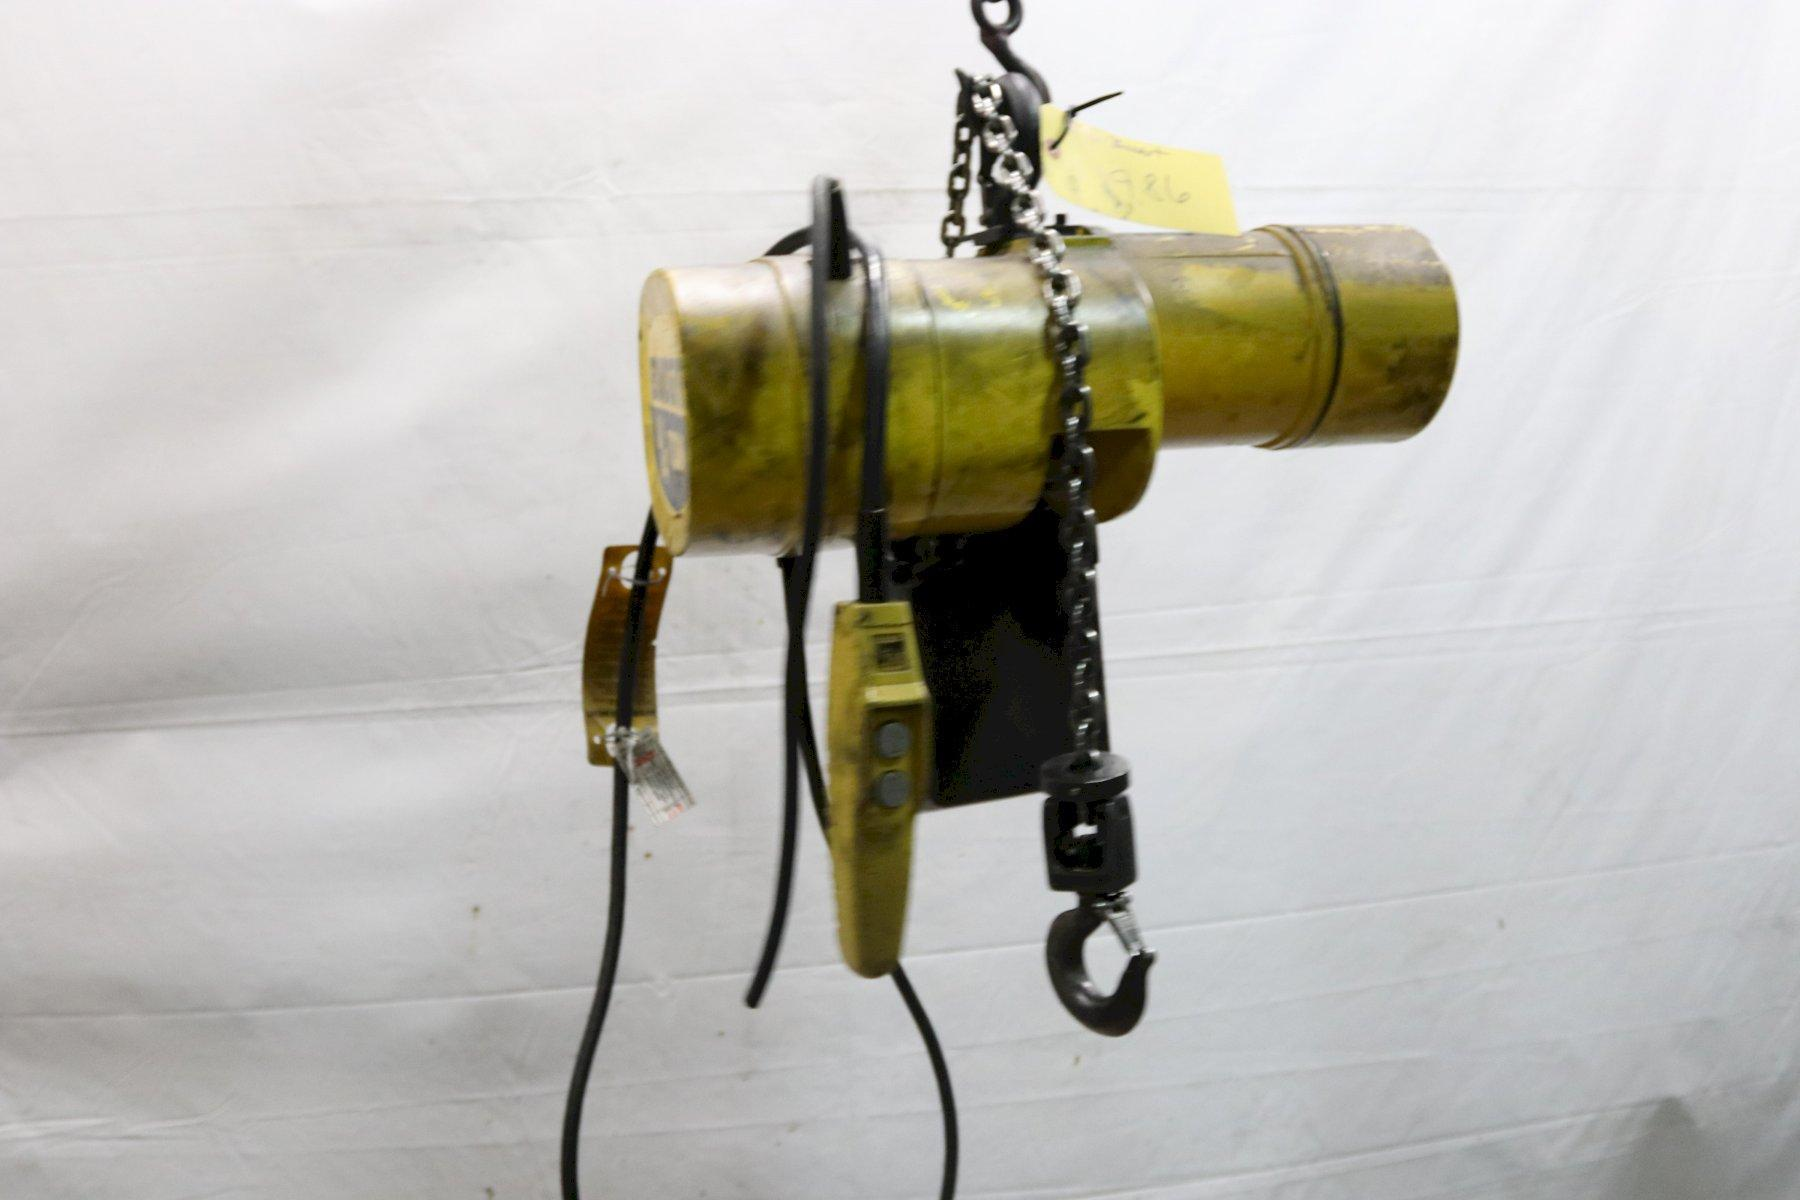 500 LB BUDGIT MODEL #BEHC2516 ELECTRIC POWERED CHAIN HOIST:   STOCK #11986